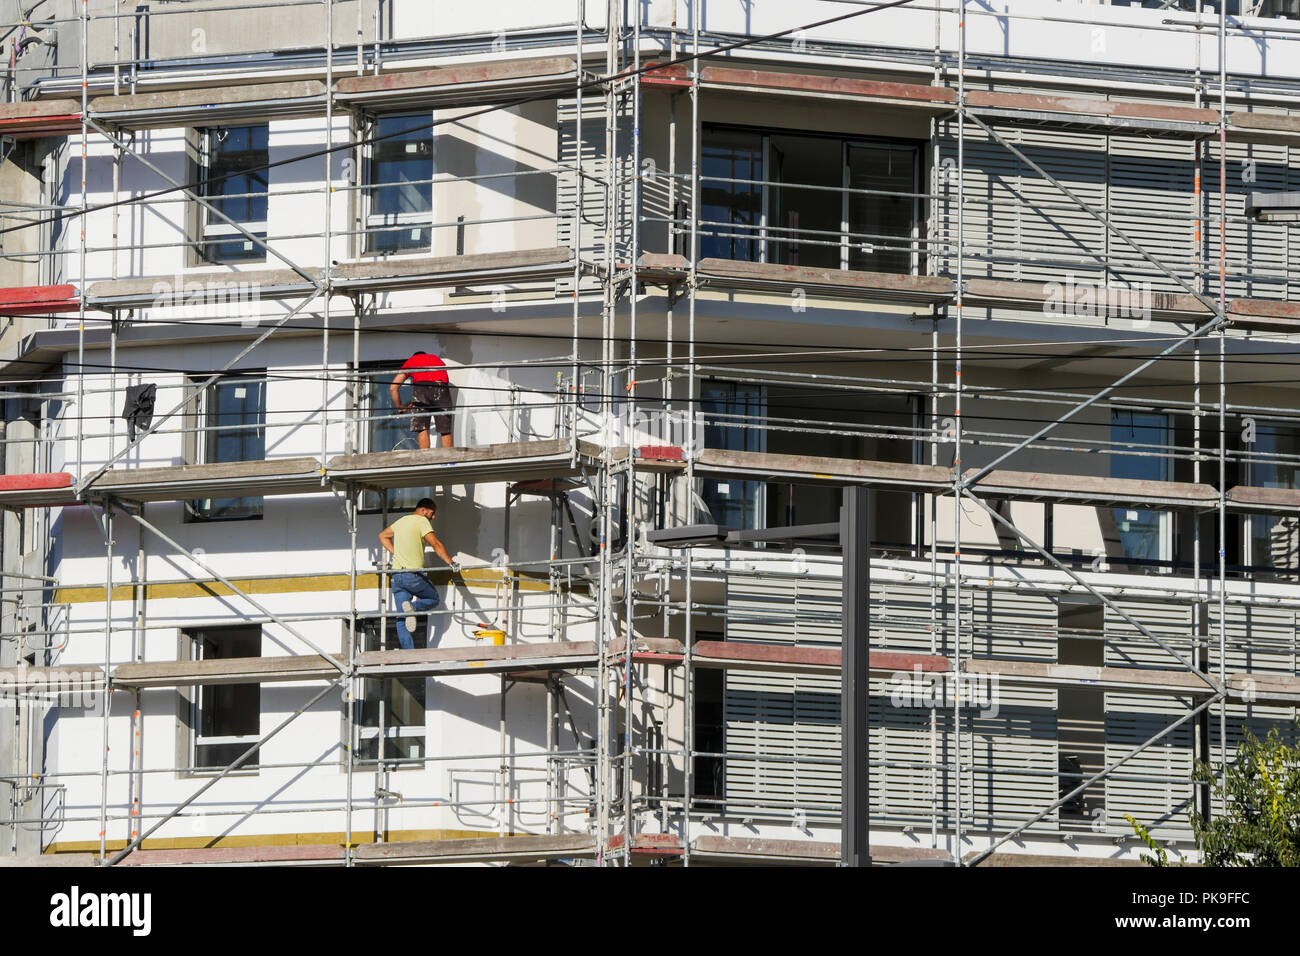 Installing insulation on a new built building, Bron, France Stock Photo